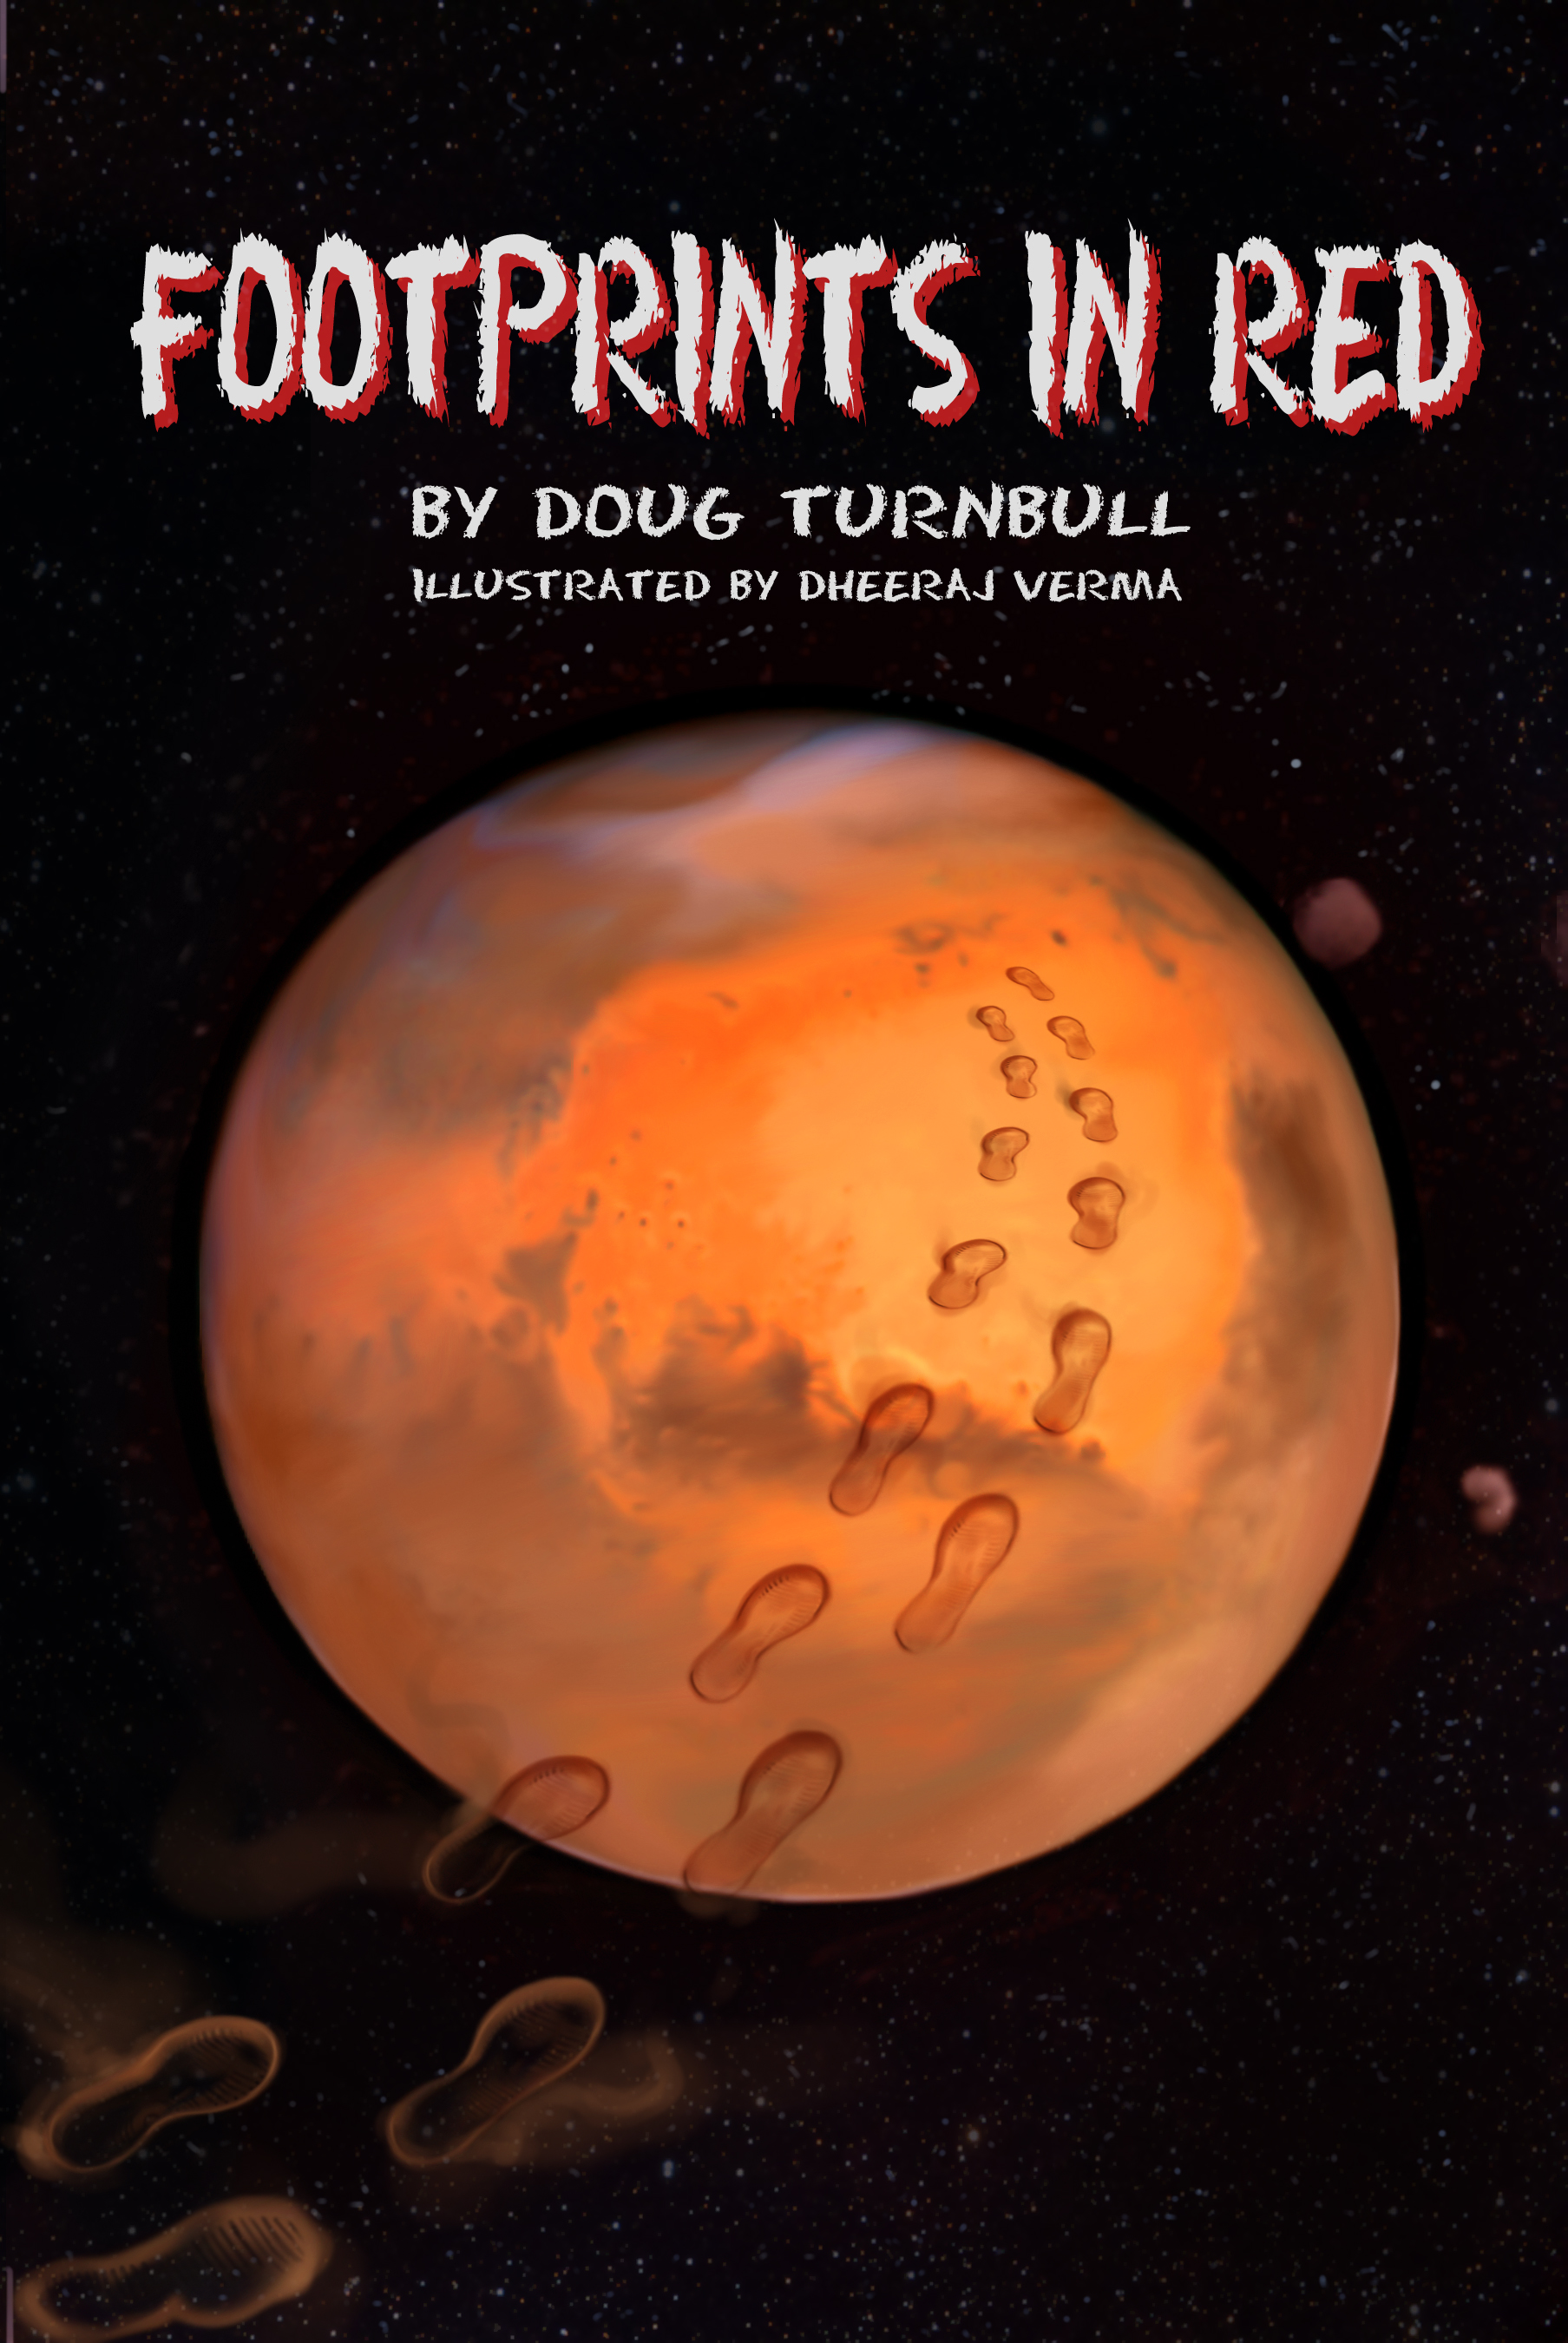 Footprints in Red by Doug Turnbull